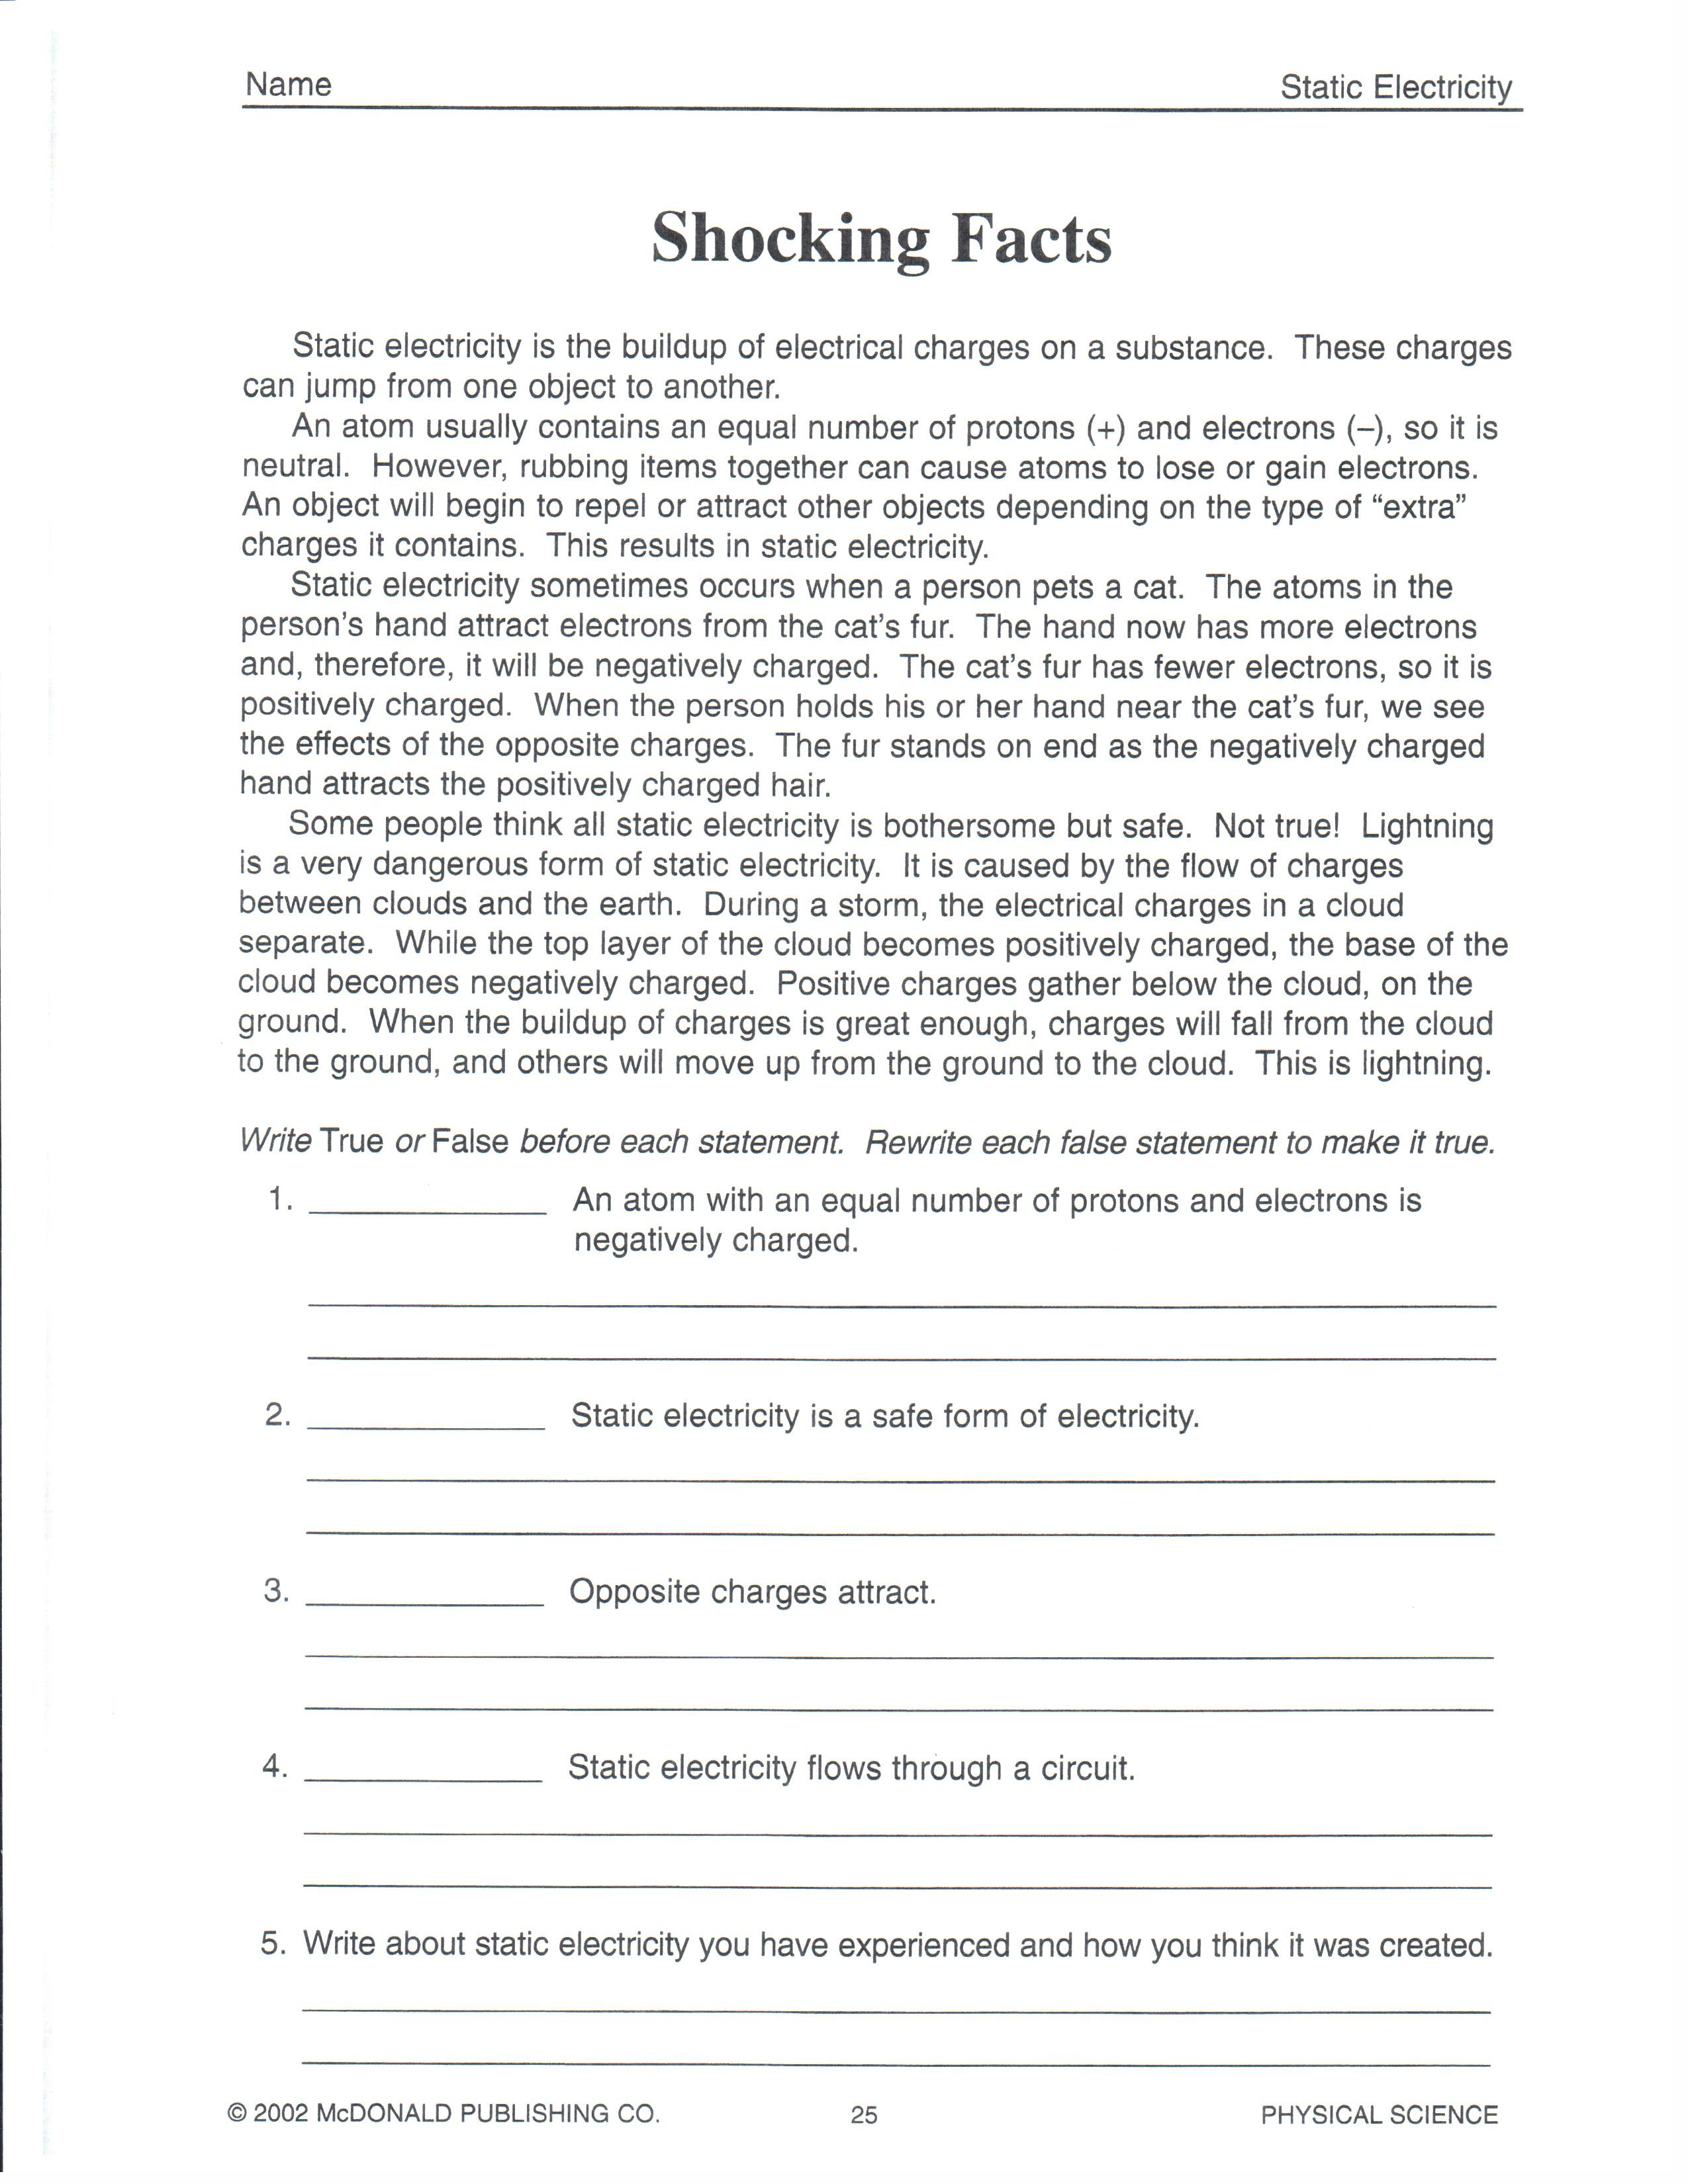 Eighth Grade Science Worksheets Multiple Meaning Words Worksheets 8th Grade & April 2013 the